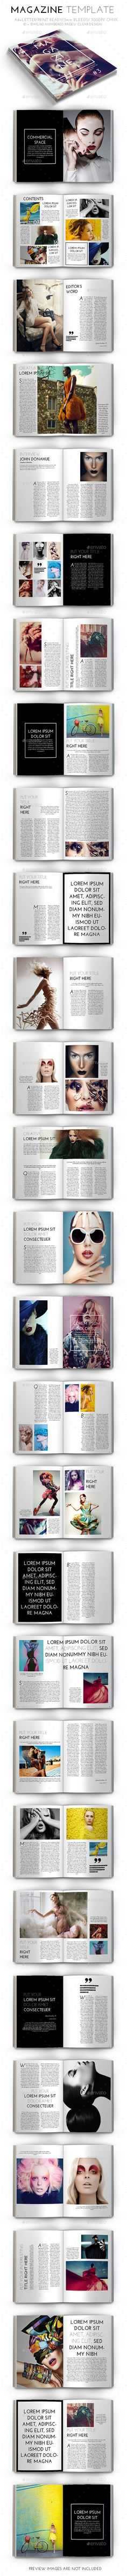 Magazine Template by crew55design  In-design CS6   Idml CS5 or lower Beautiful IDMagazine template which you can use for anycategory of magazines. Beautiful clean